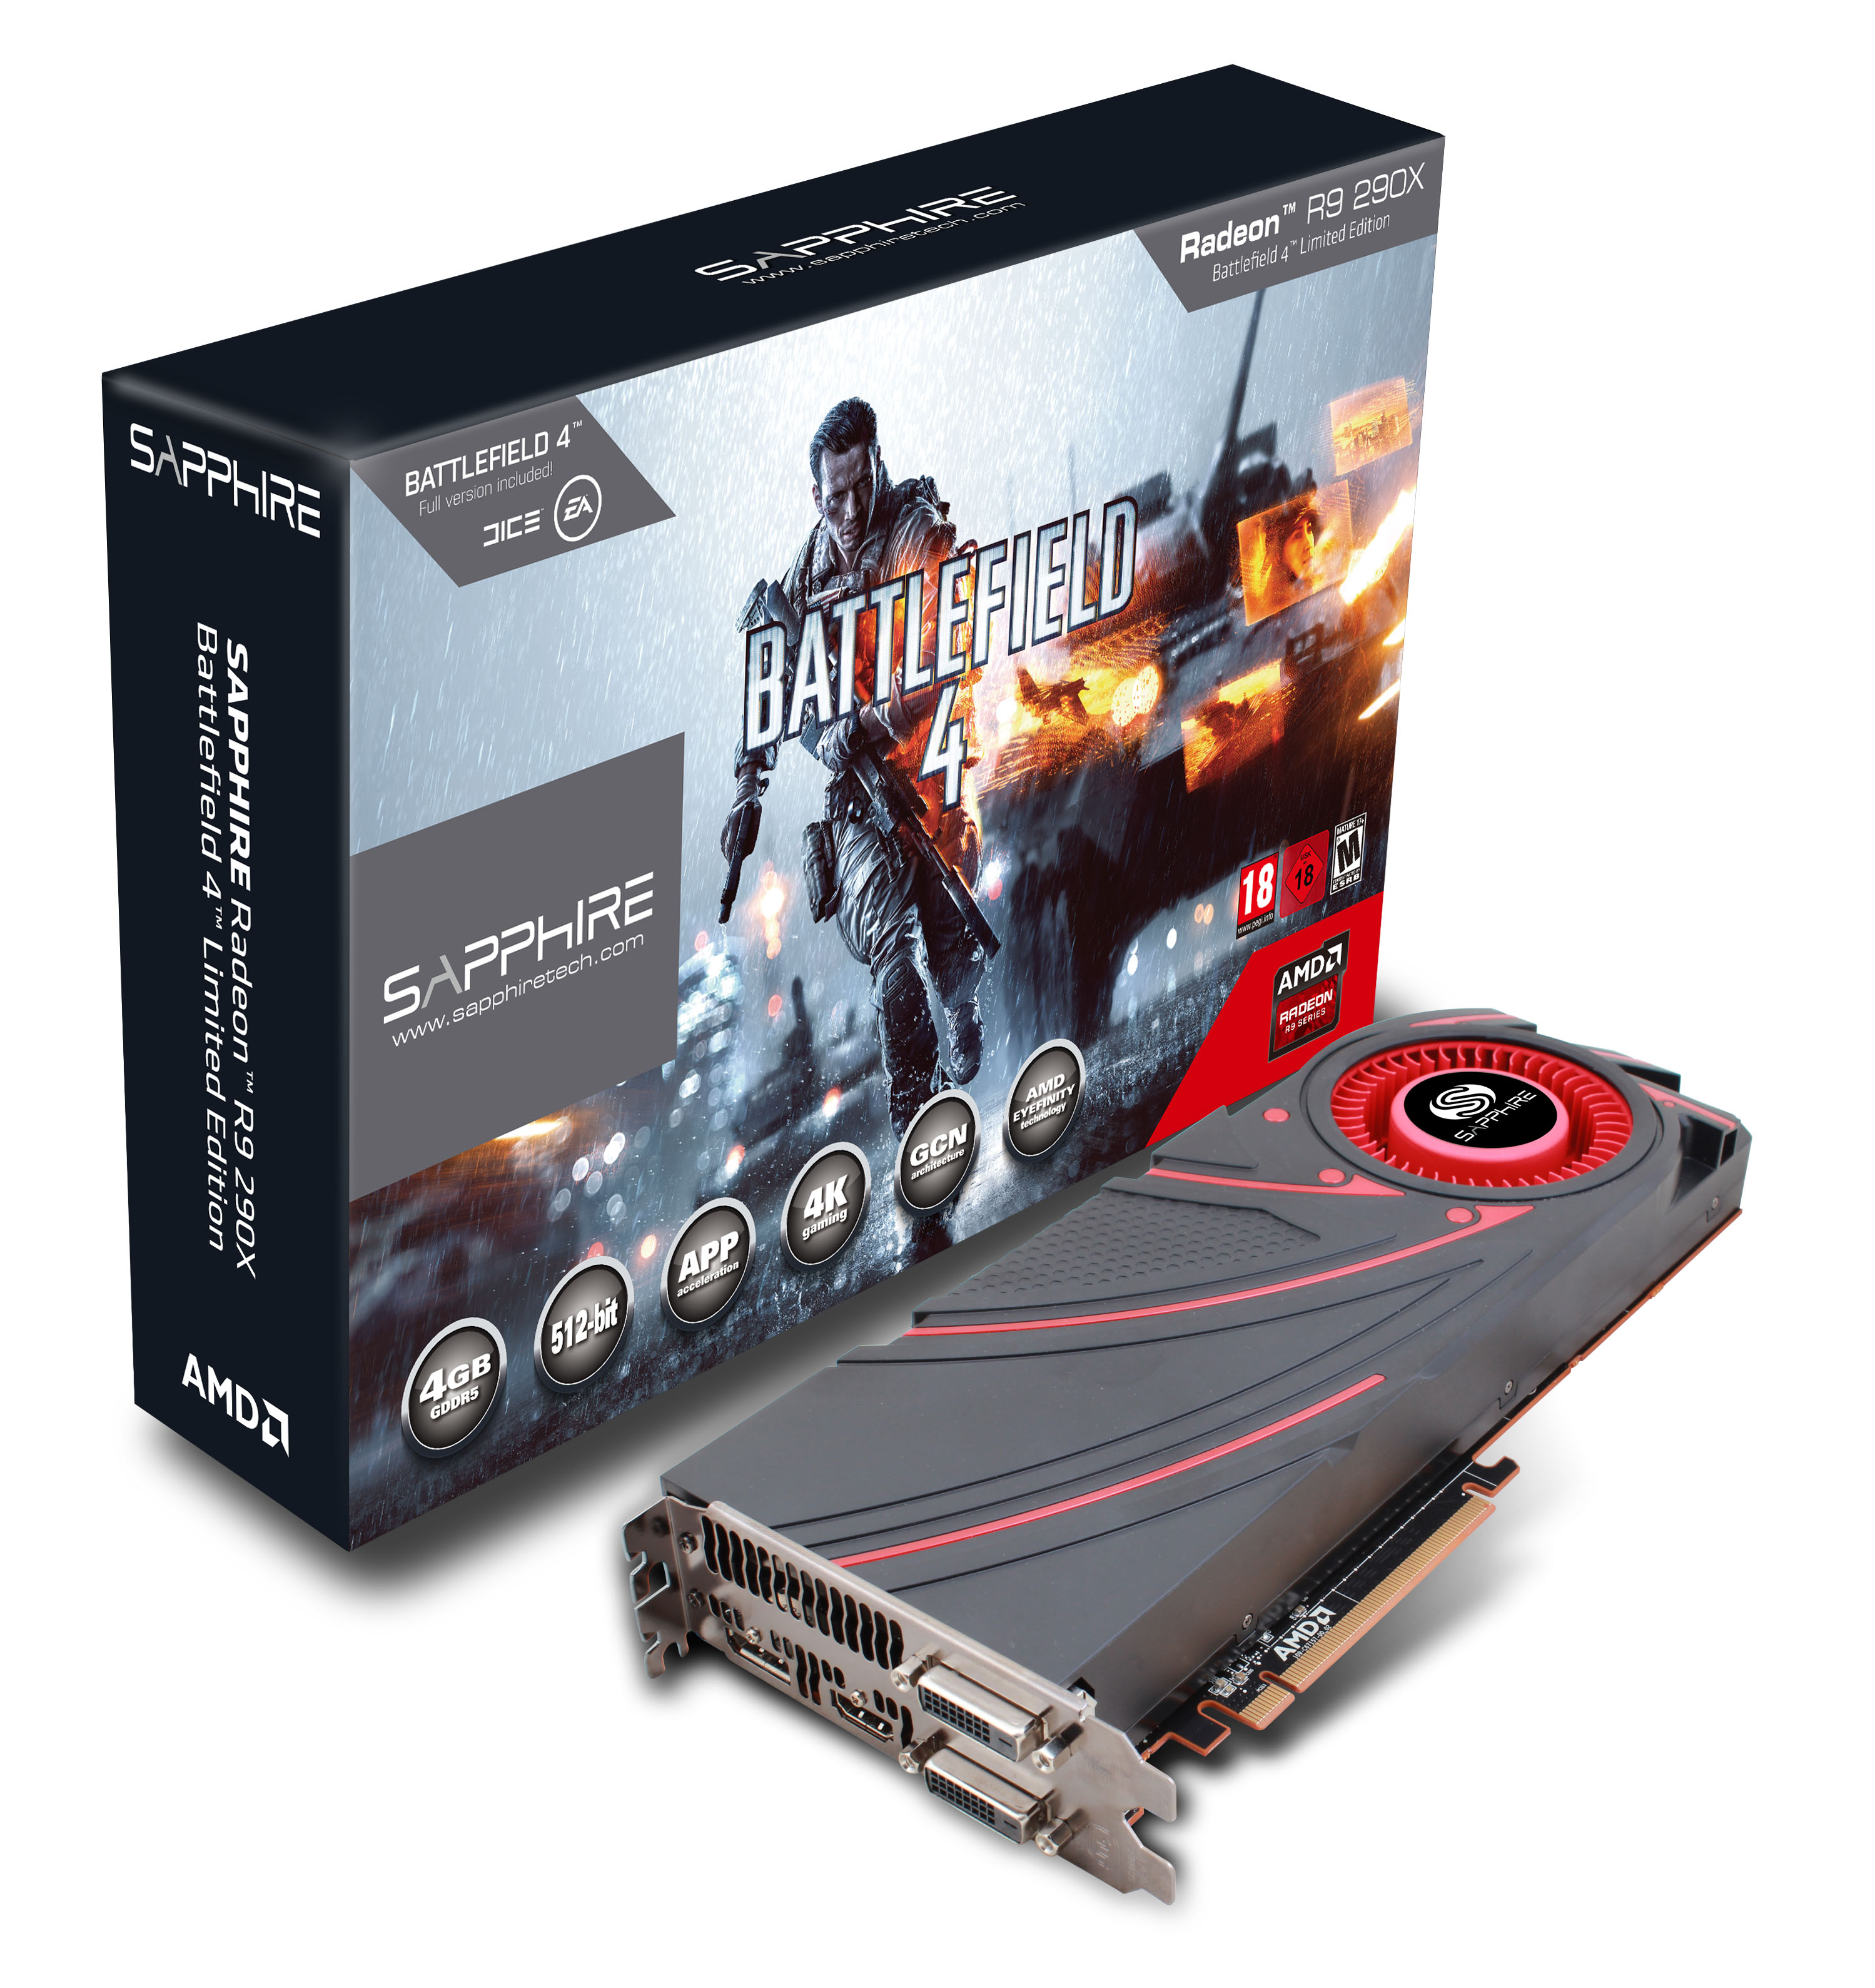 SAPPHIRE R9 290X TOPS THE BILL New top of the range graphics card delivers 4K graphics, AMD ...